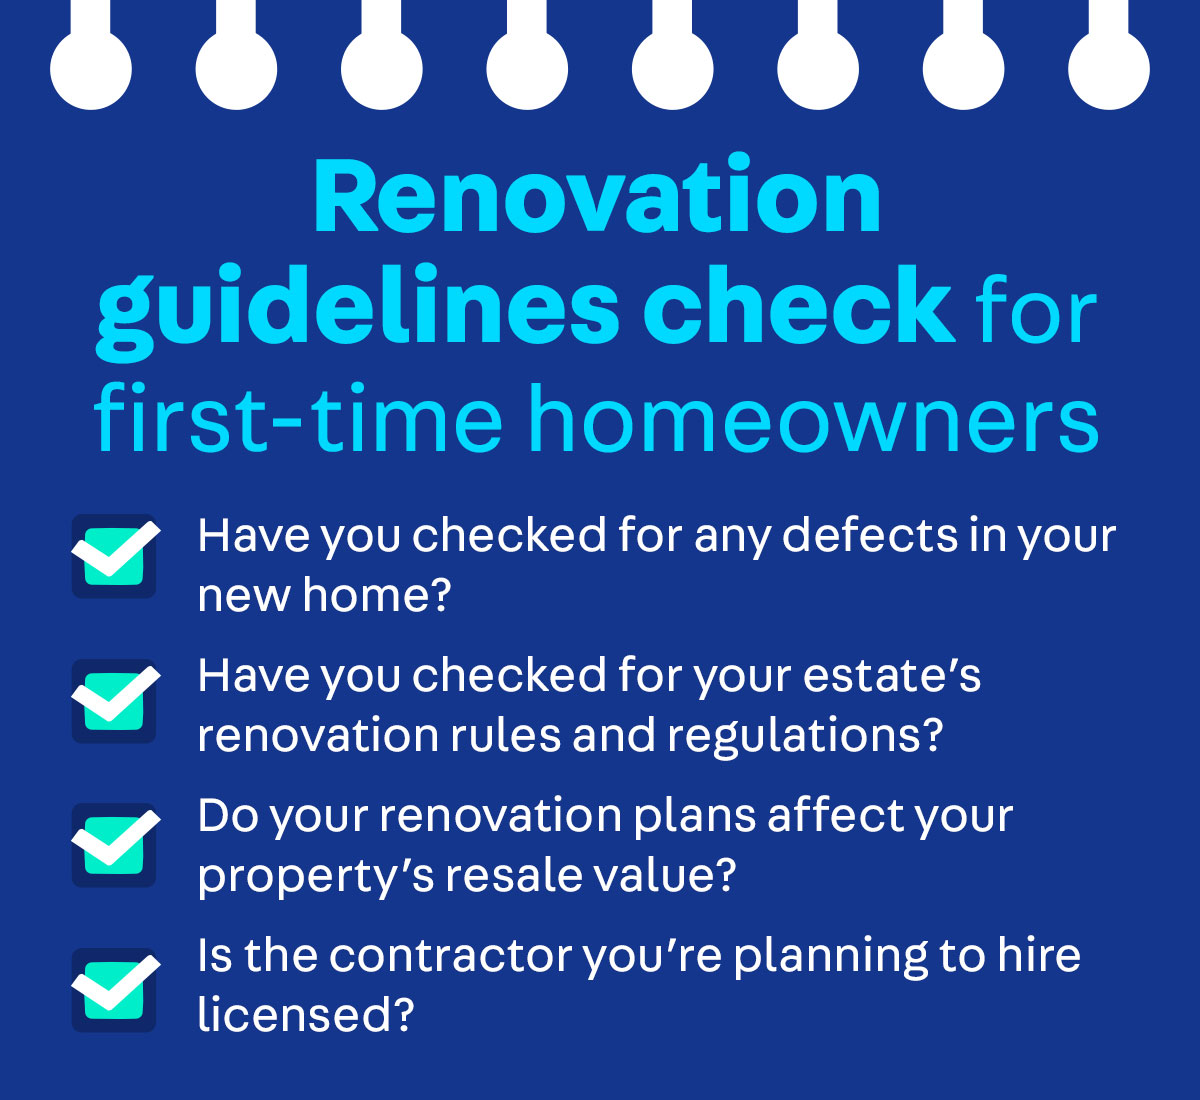 New homeowner renovation checklist by Carousell